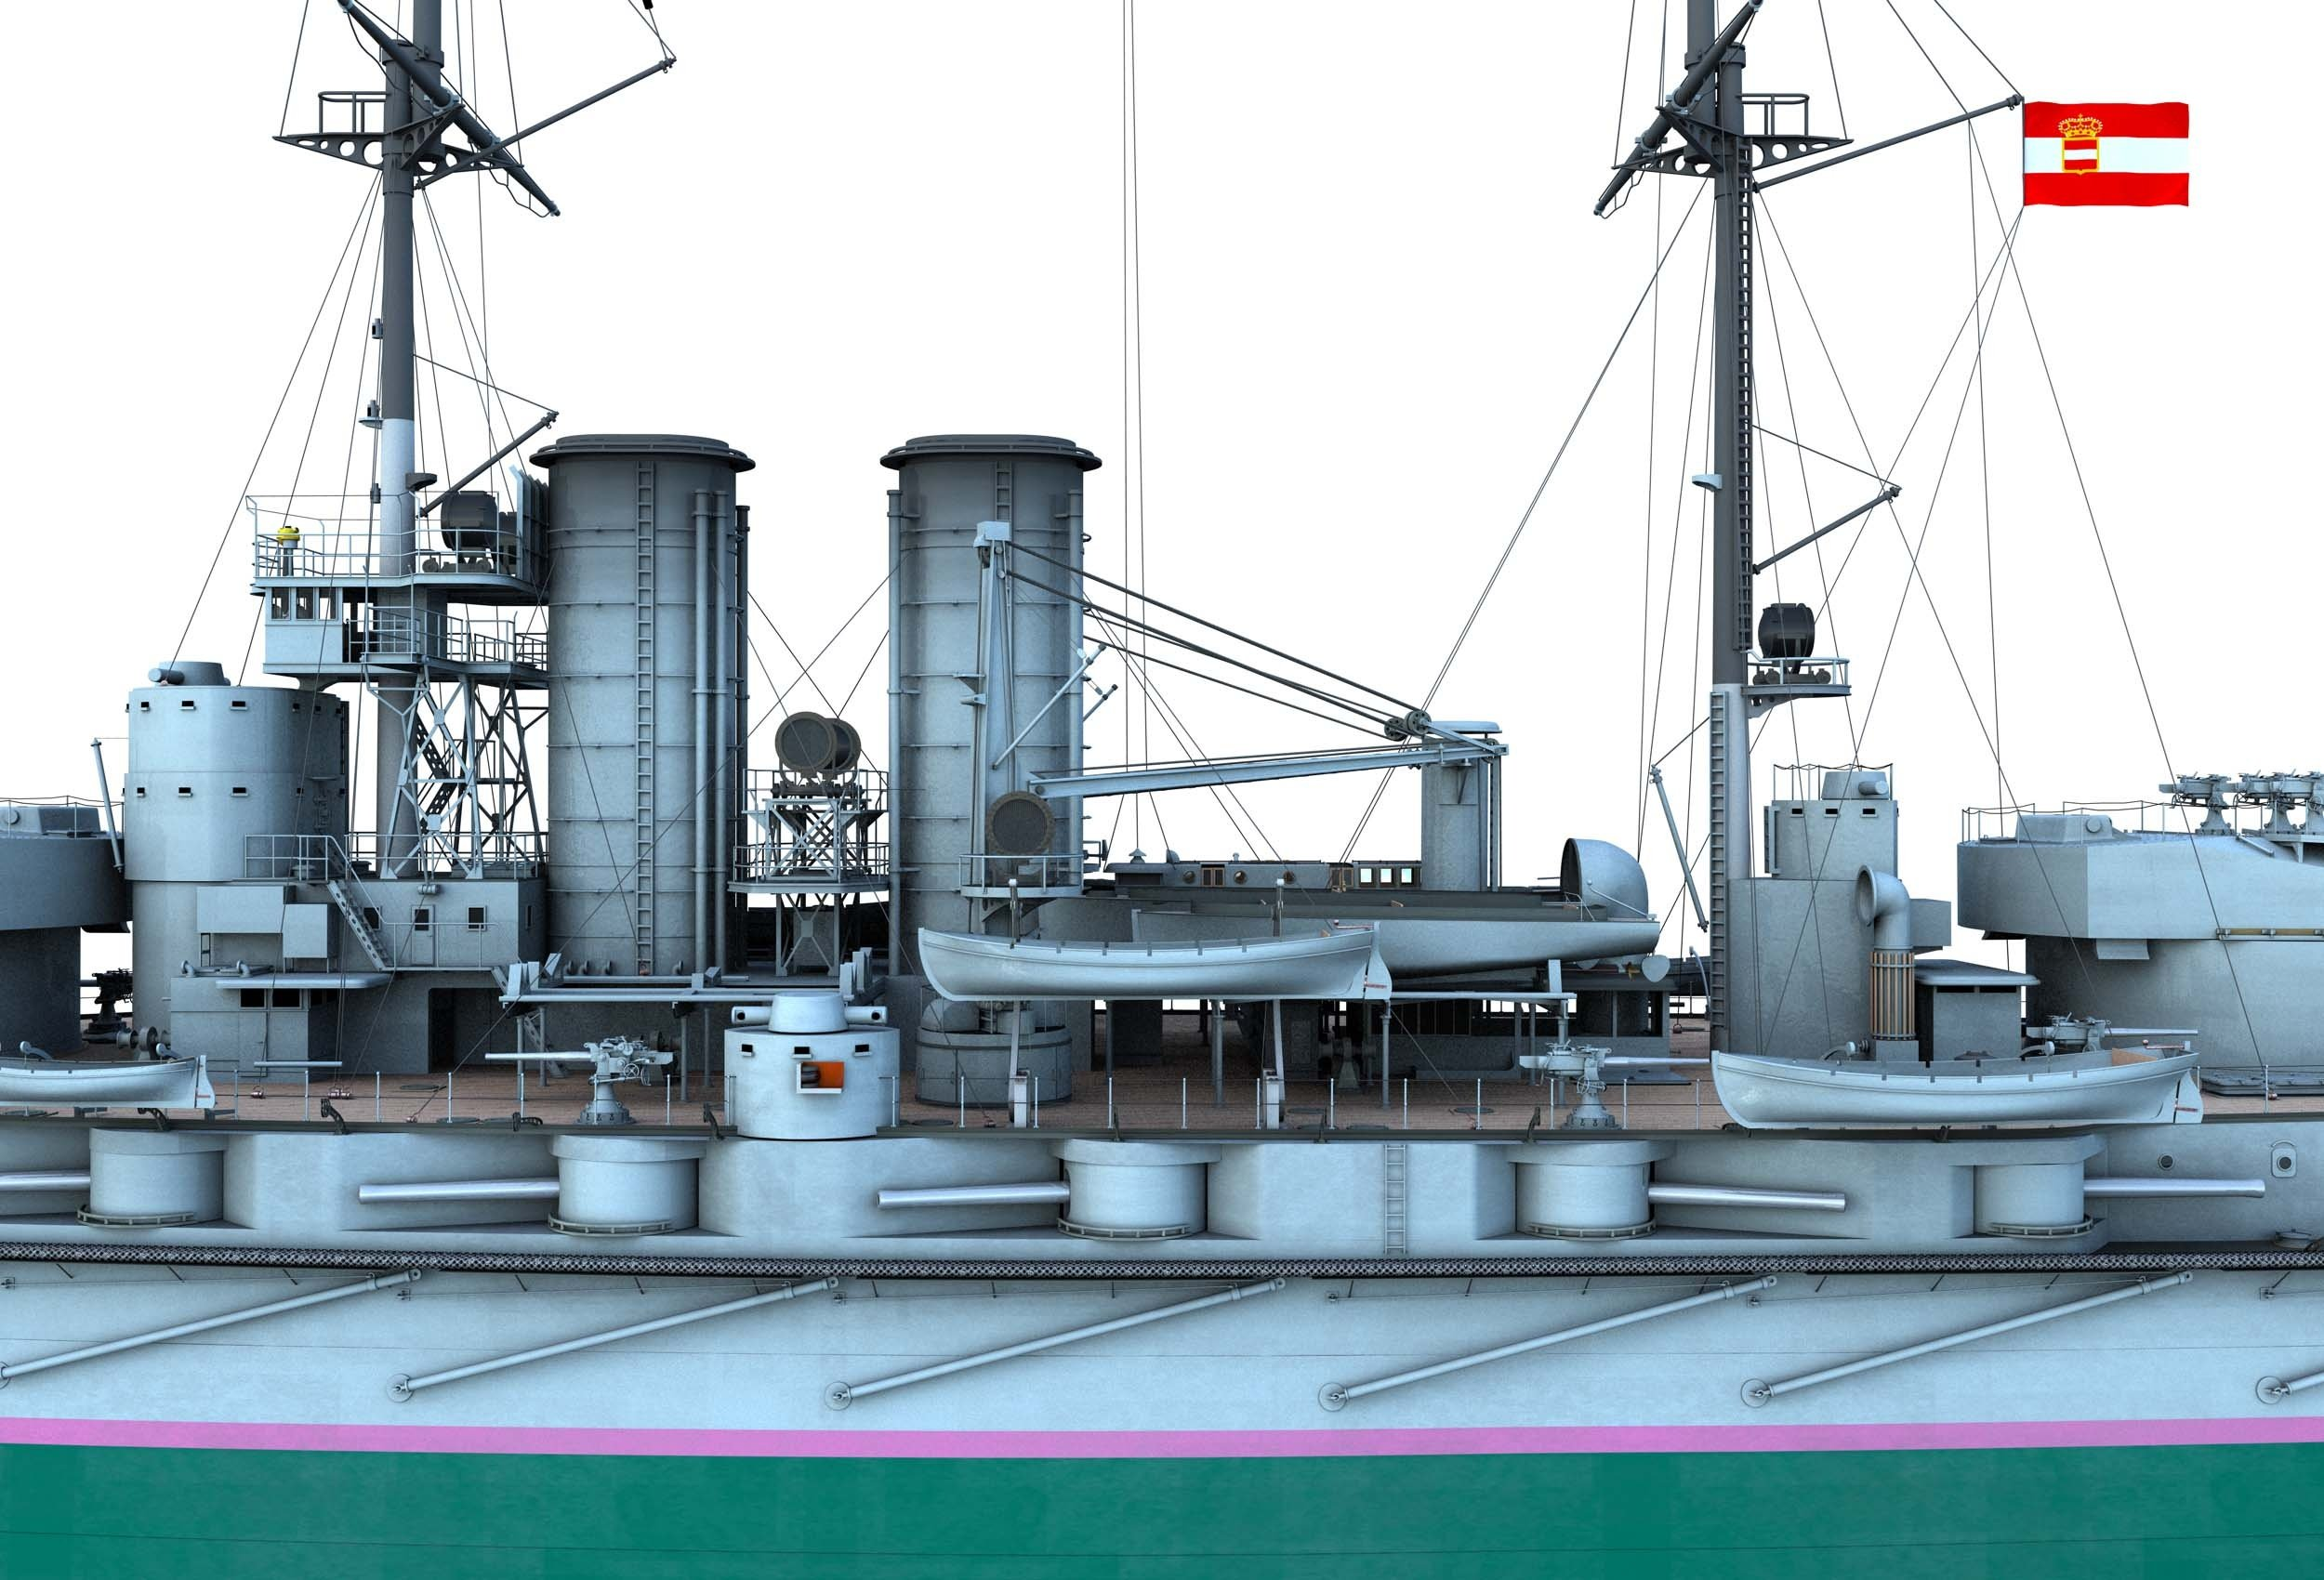 https://0901.nccdn.net/4_2/000/000/046/6ea/CK11-Partial-Ship-Port-Side-Midships-Funnels-Boat-Platforms-2500x1700.jpg